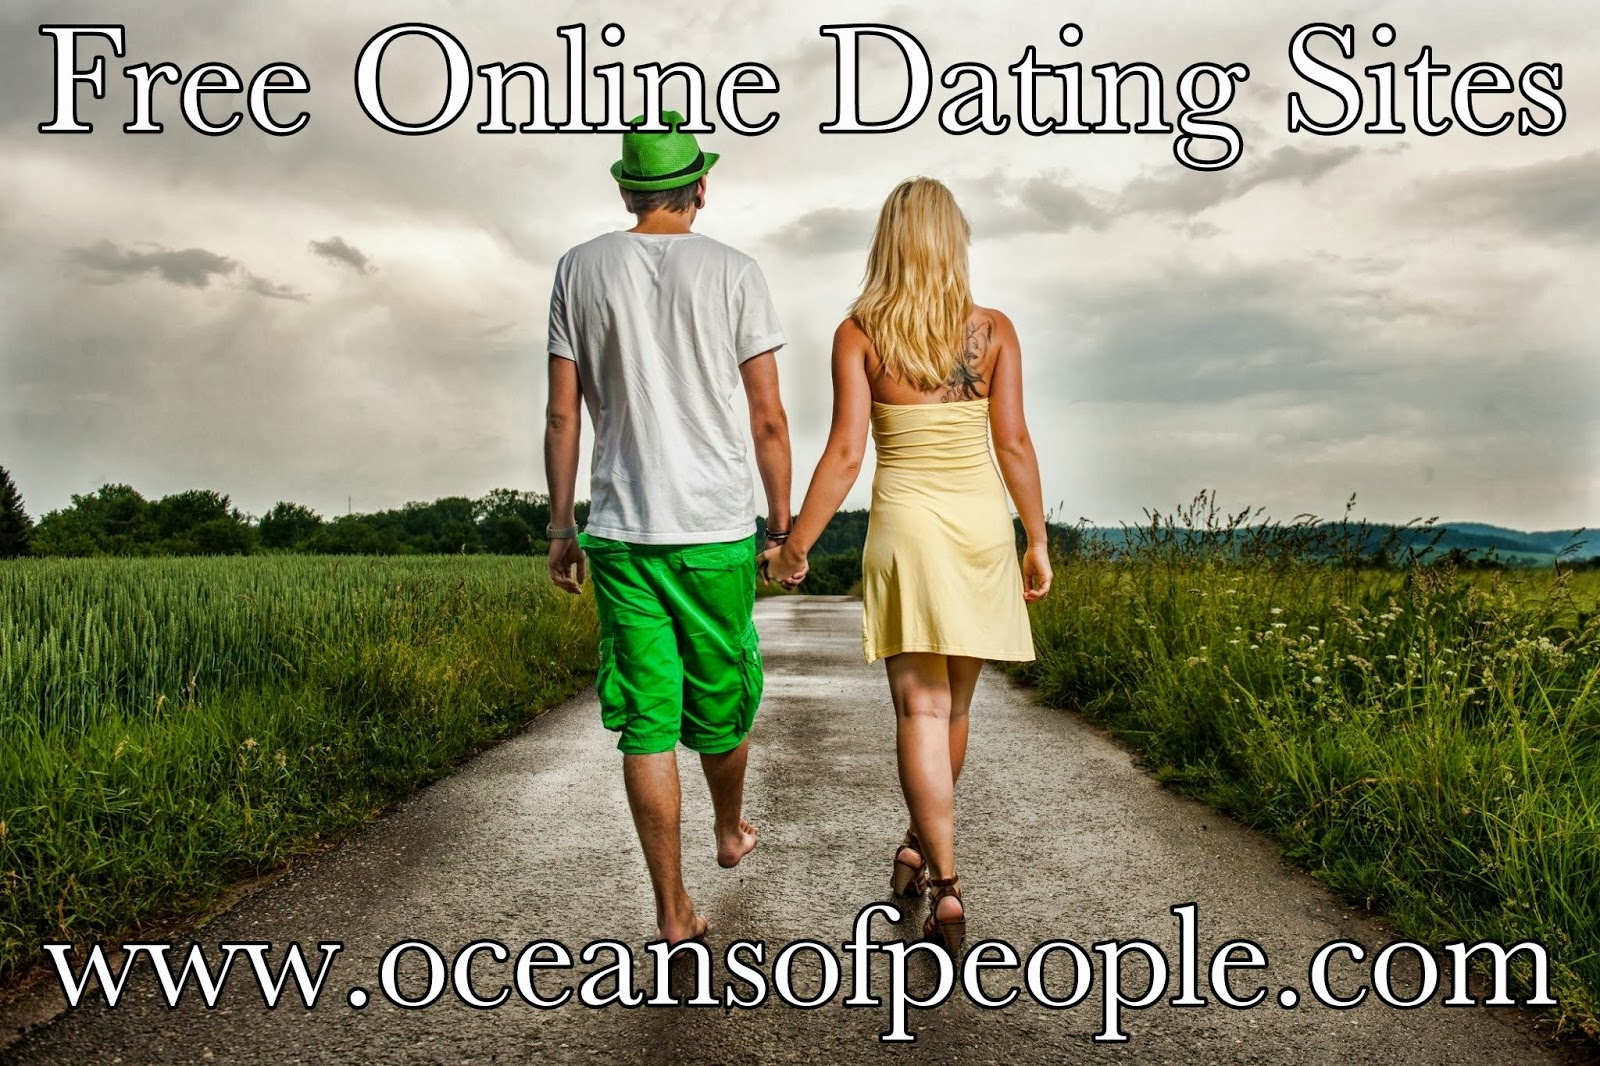 100% free online dating in seldovia List of top websites like alaskacapitalinncom only 100% free online dating service for alaska singles only valdez, denali, tatitlek, mckinley, seldovia.